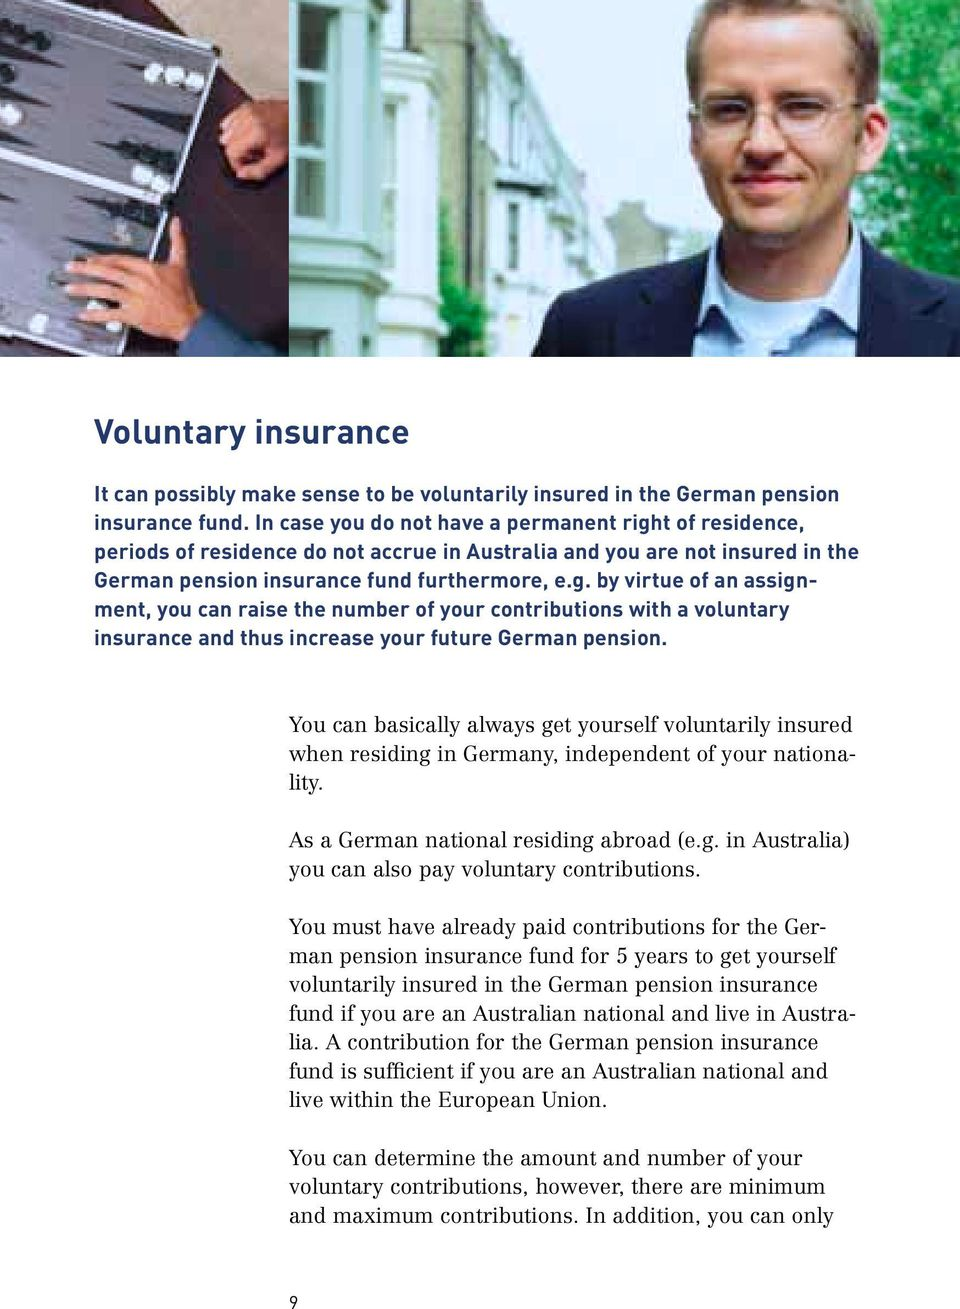 You can basically always get yourself voluntarily insured when residing in Germany, independent of your nationality. As a German national residing abroad (e.g. in Australia) you can also pay voluntary contributions.